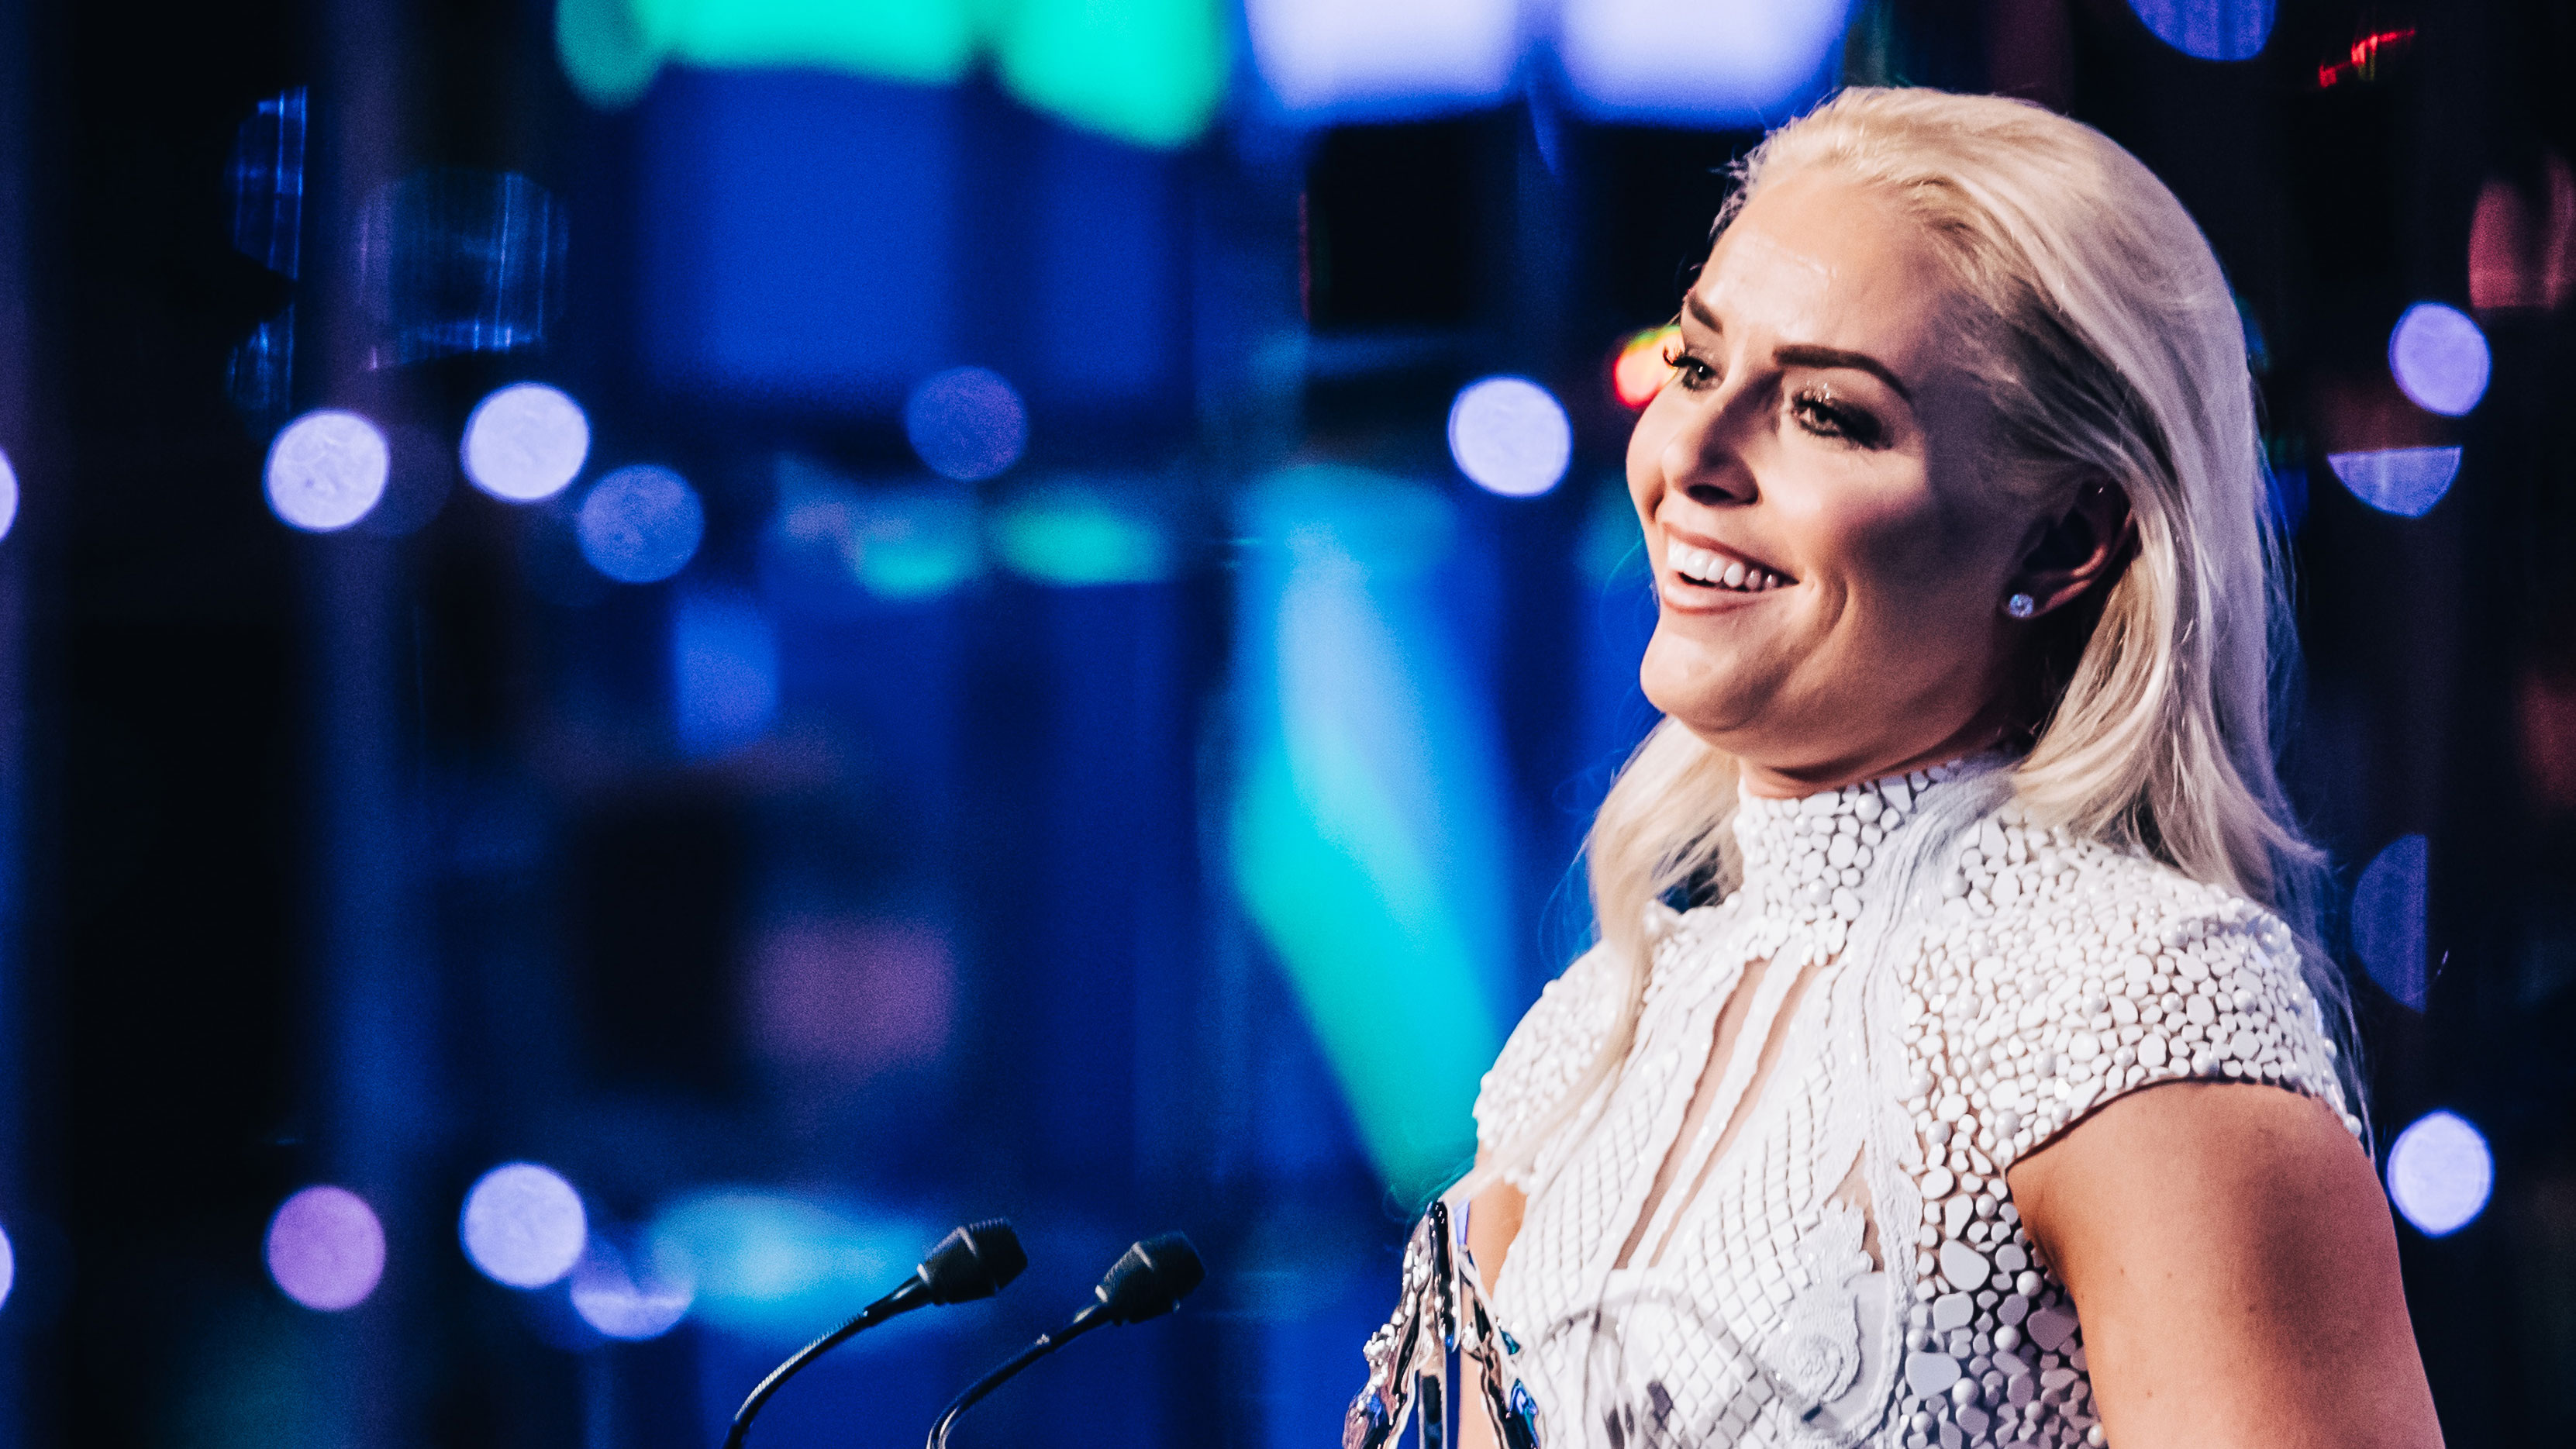 Lindsey Vonn accepts Laureus Spirit of Sport Award